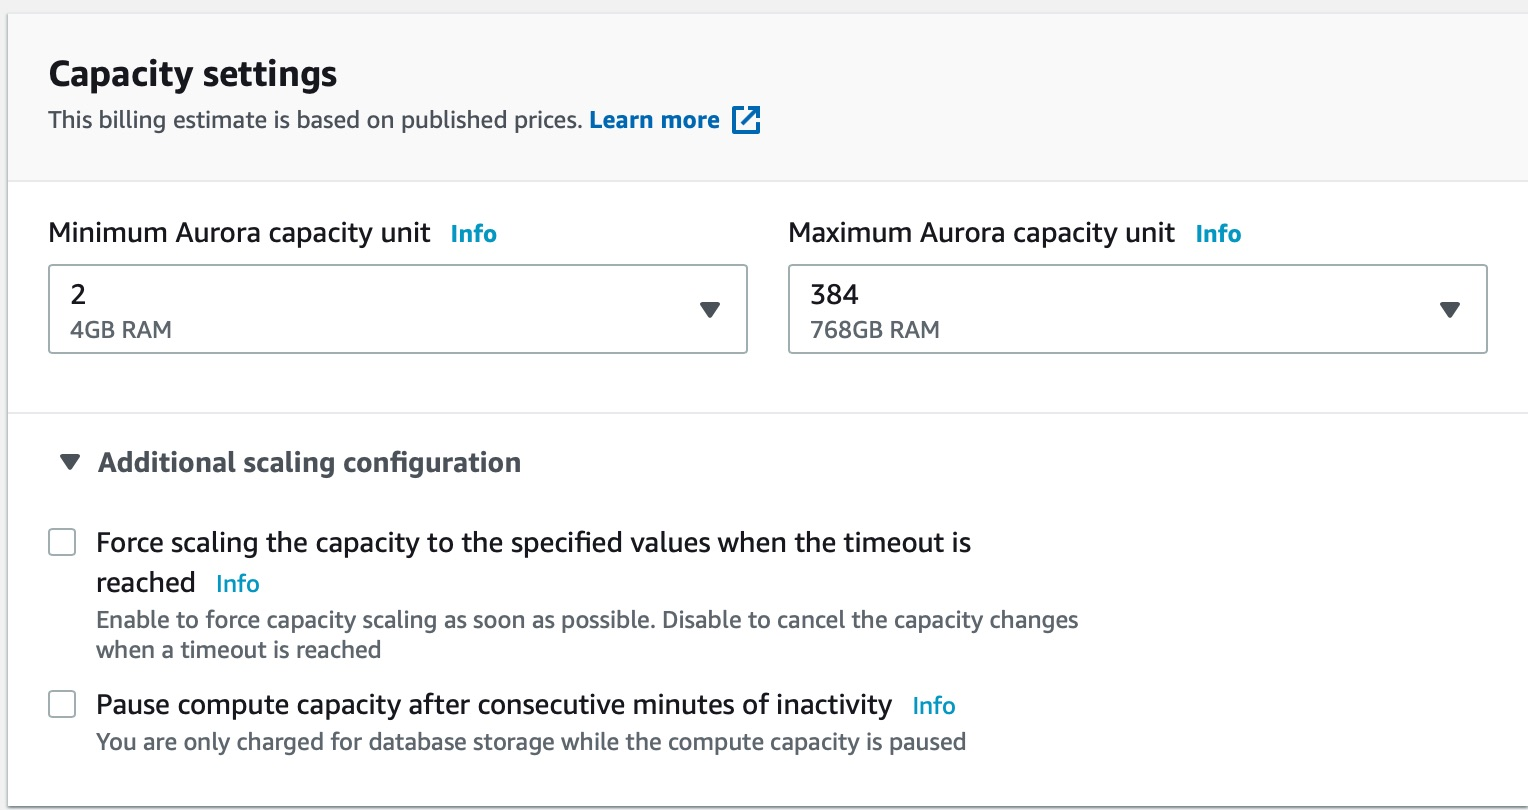 Capacity Settings AWS Offers you